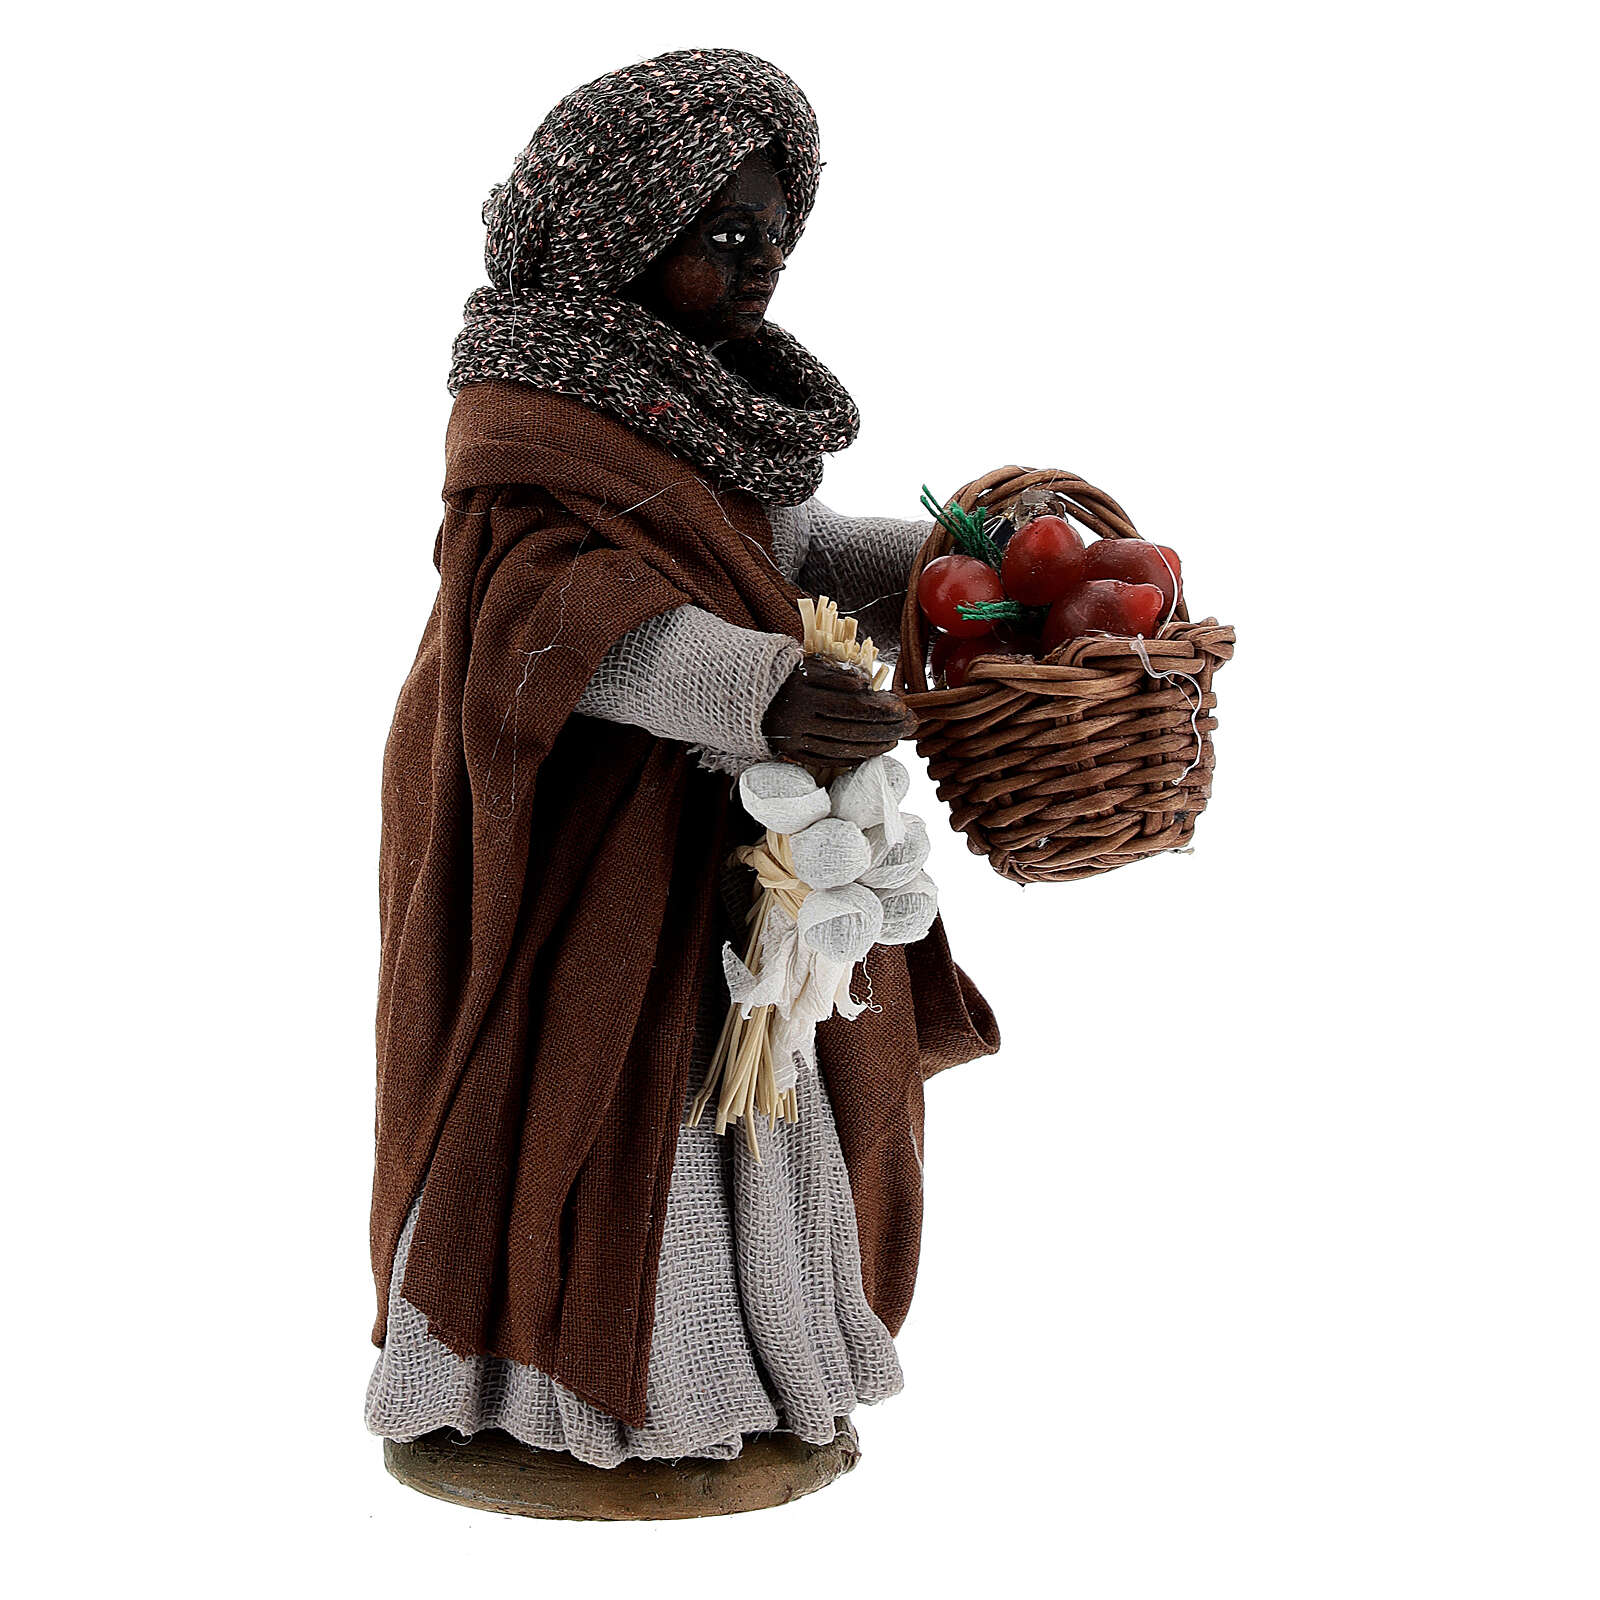 Gypsy woman with tomato basket statue, Naples nativity 10 cm 4